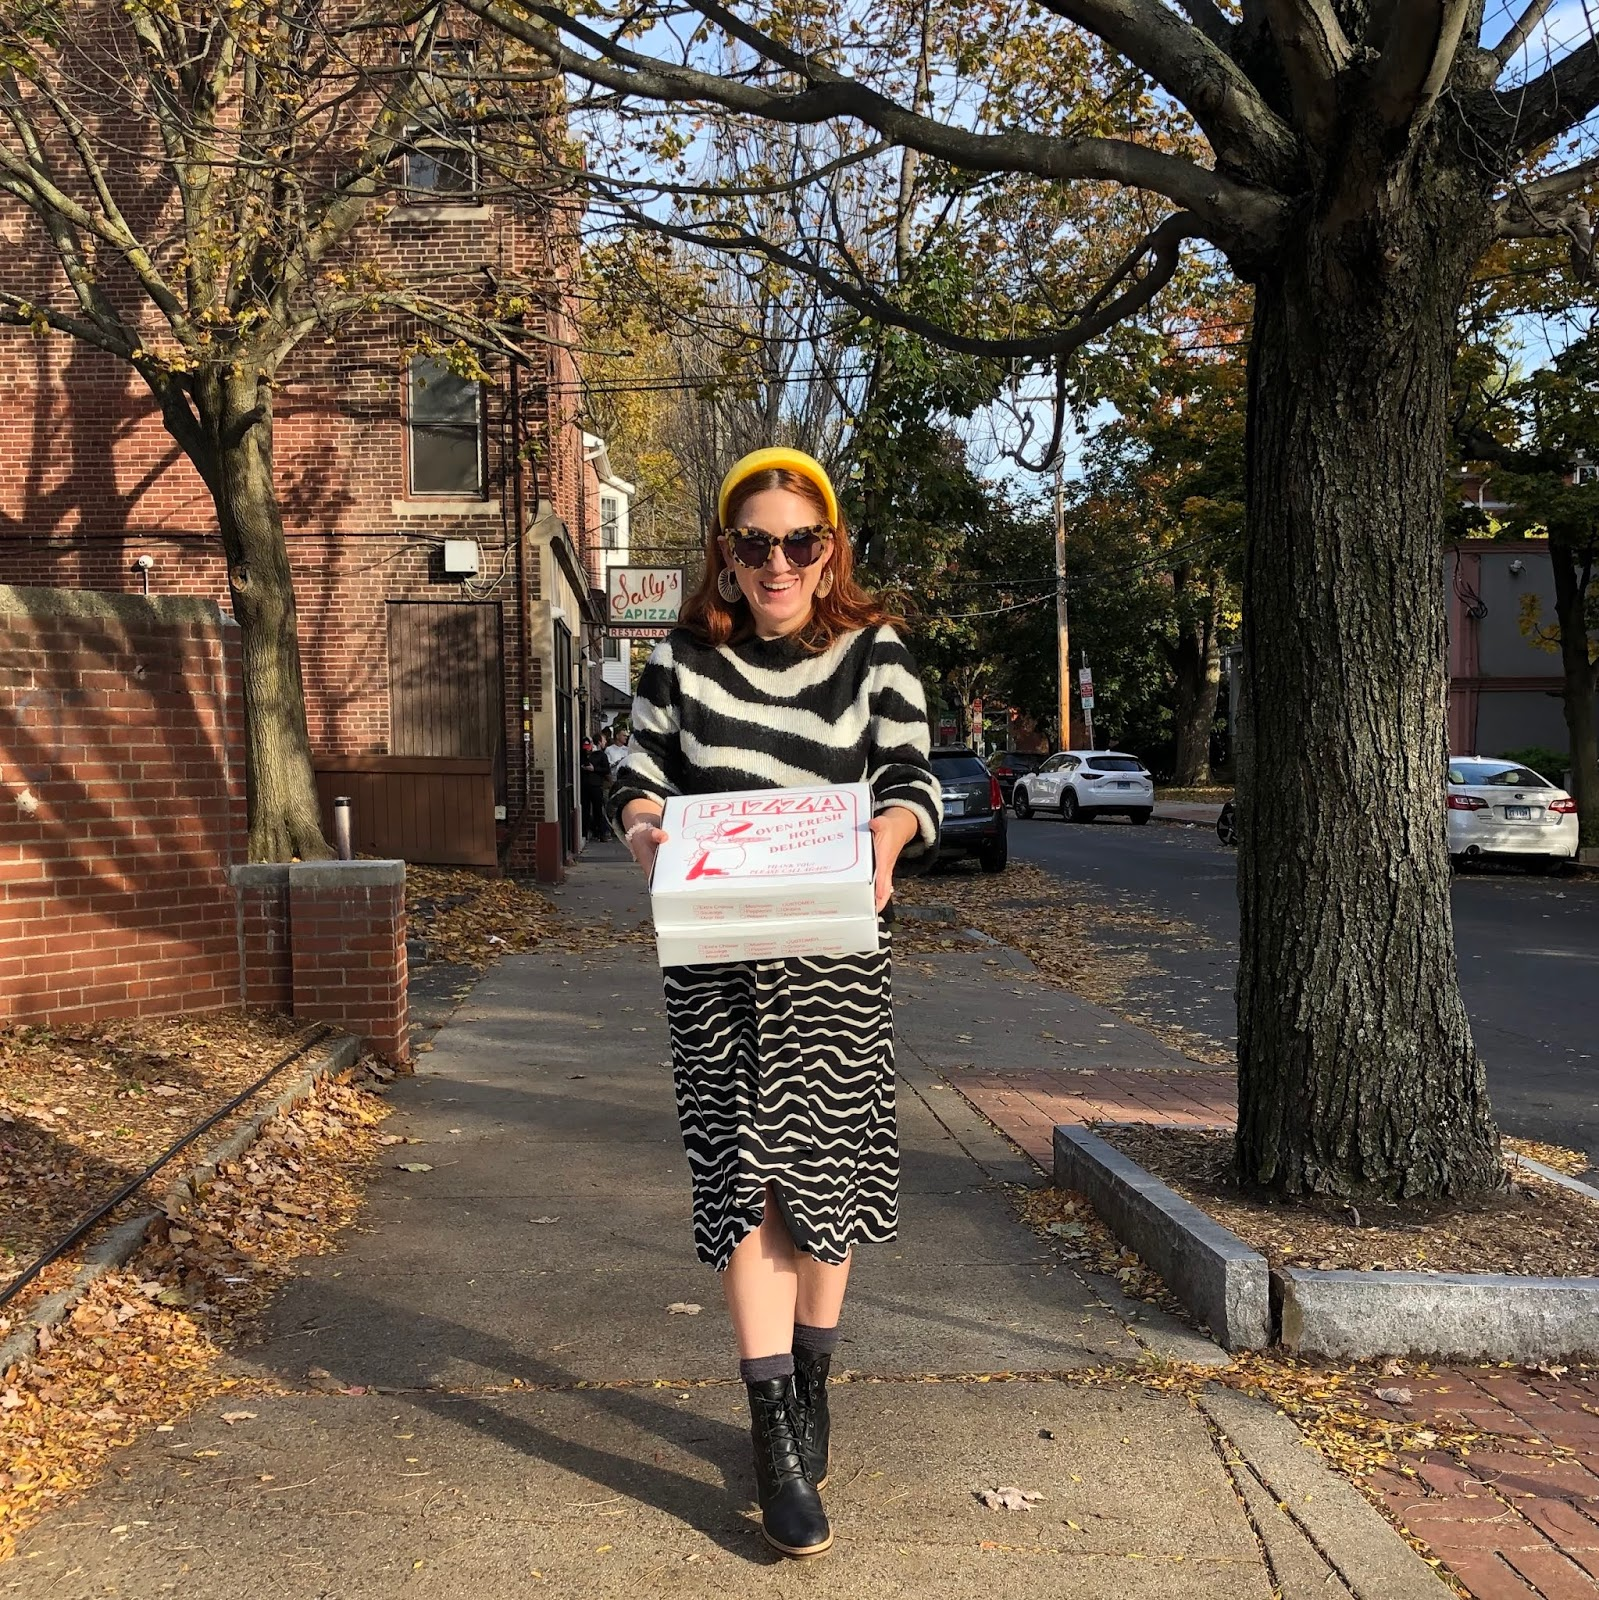 fall style, affordable fall fashion, who what wear collection fall 2019, who what wear collection target fall 2019, zebra print fall fashion, affordable zebra print skirt, affordable zebra print sweater, zebra print style, zebra print fall outfits, red pea coat under $55, fall fashion staples under $75, cute fall outfits from target, cute fall outfit ideas from target